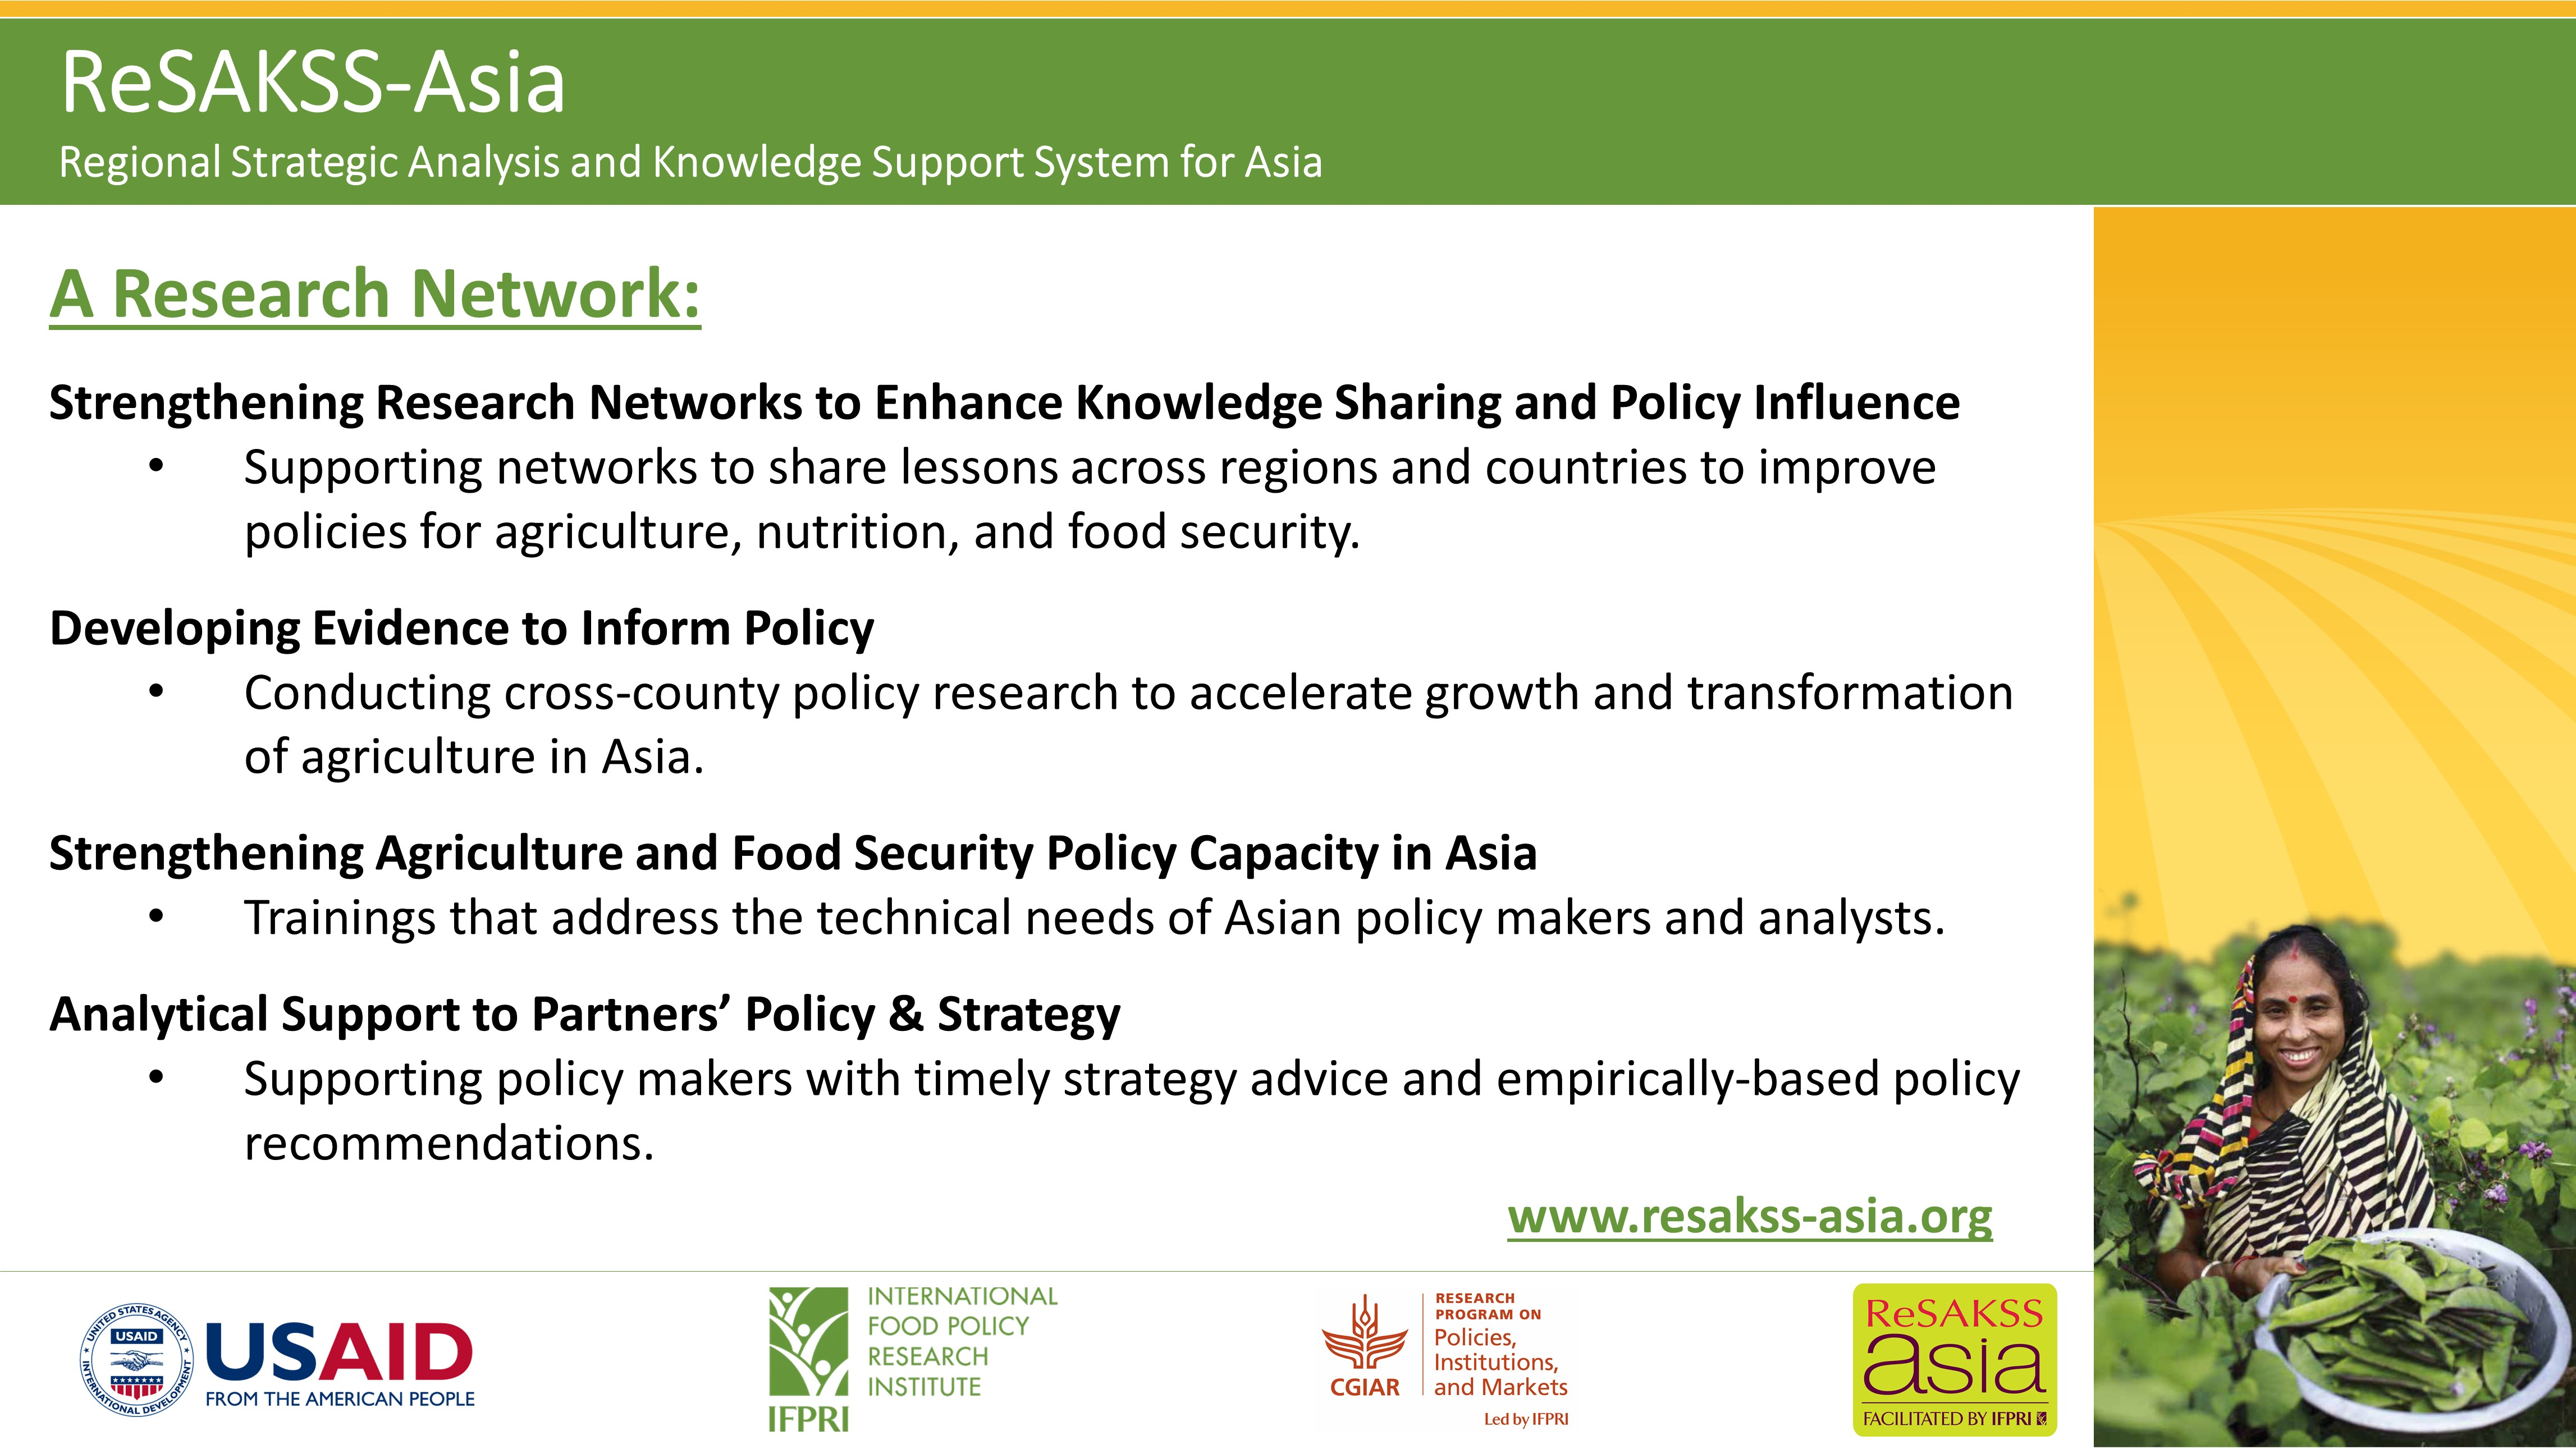 ReSAKSS-Asia Regional Strategic Analysis and Knowledge Support System for Asia